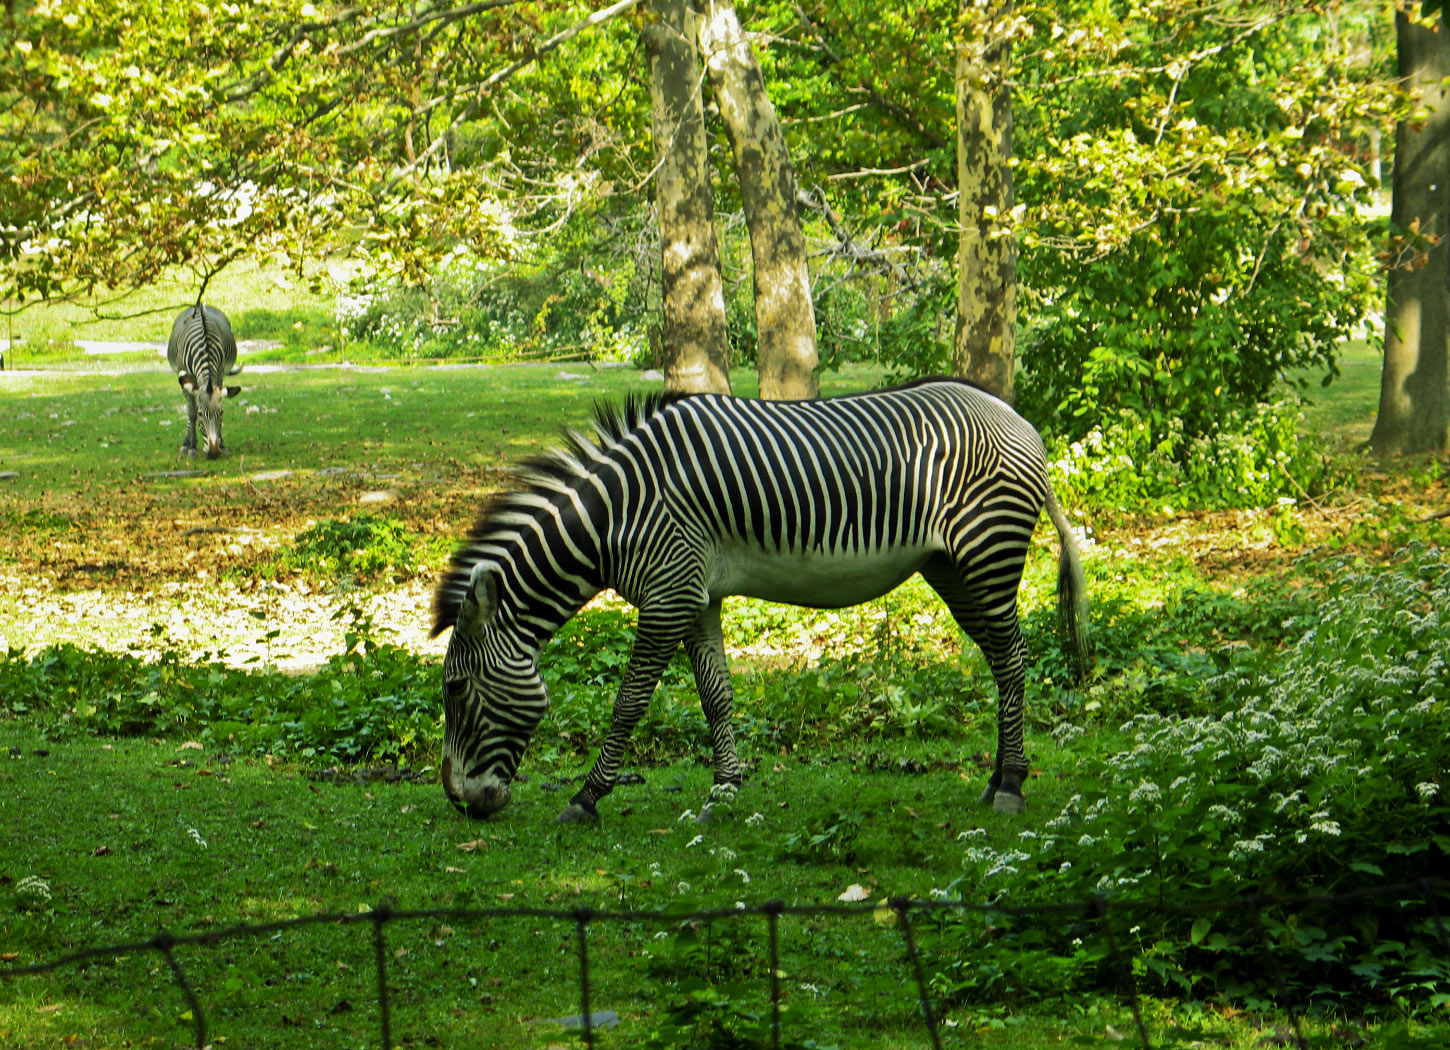 Zebra wallpaper, zebra wallpapers | Amazing Wallpapers